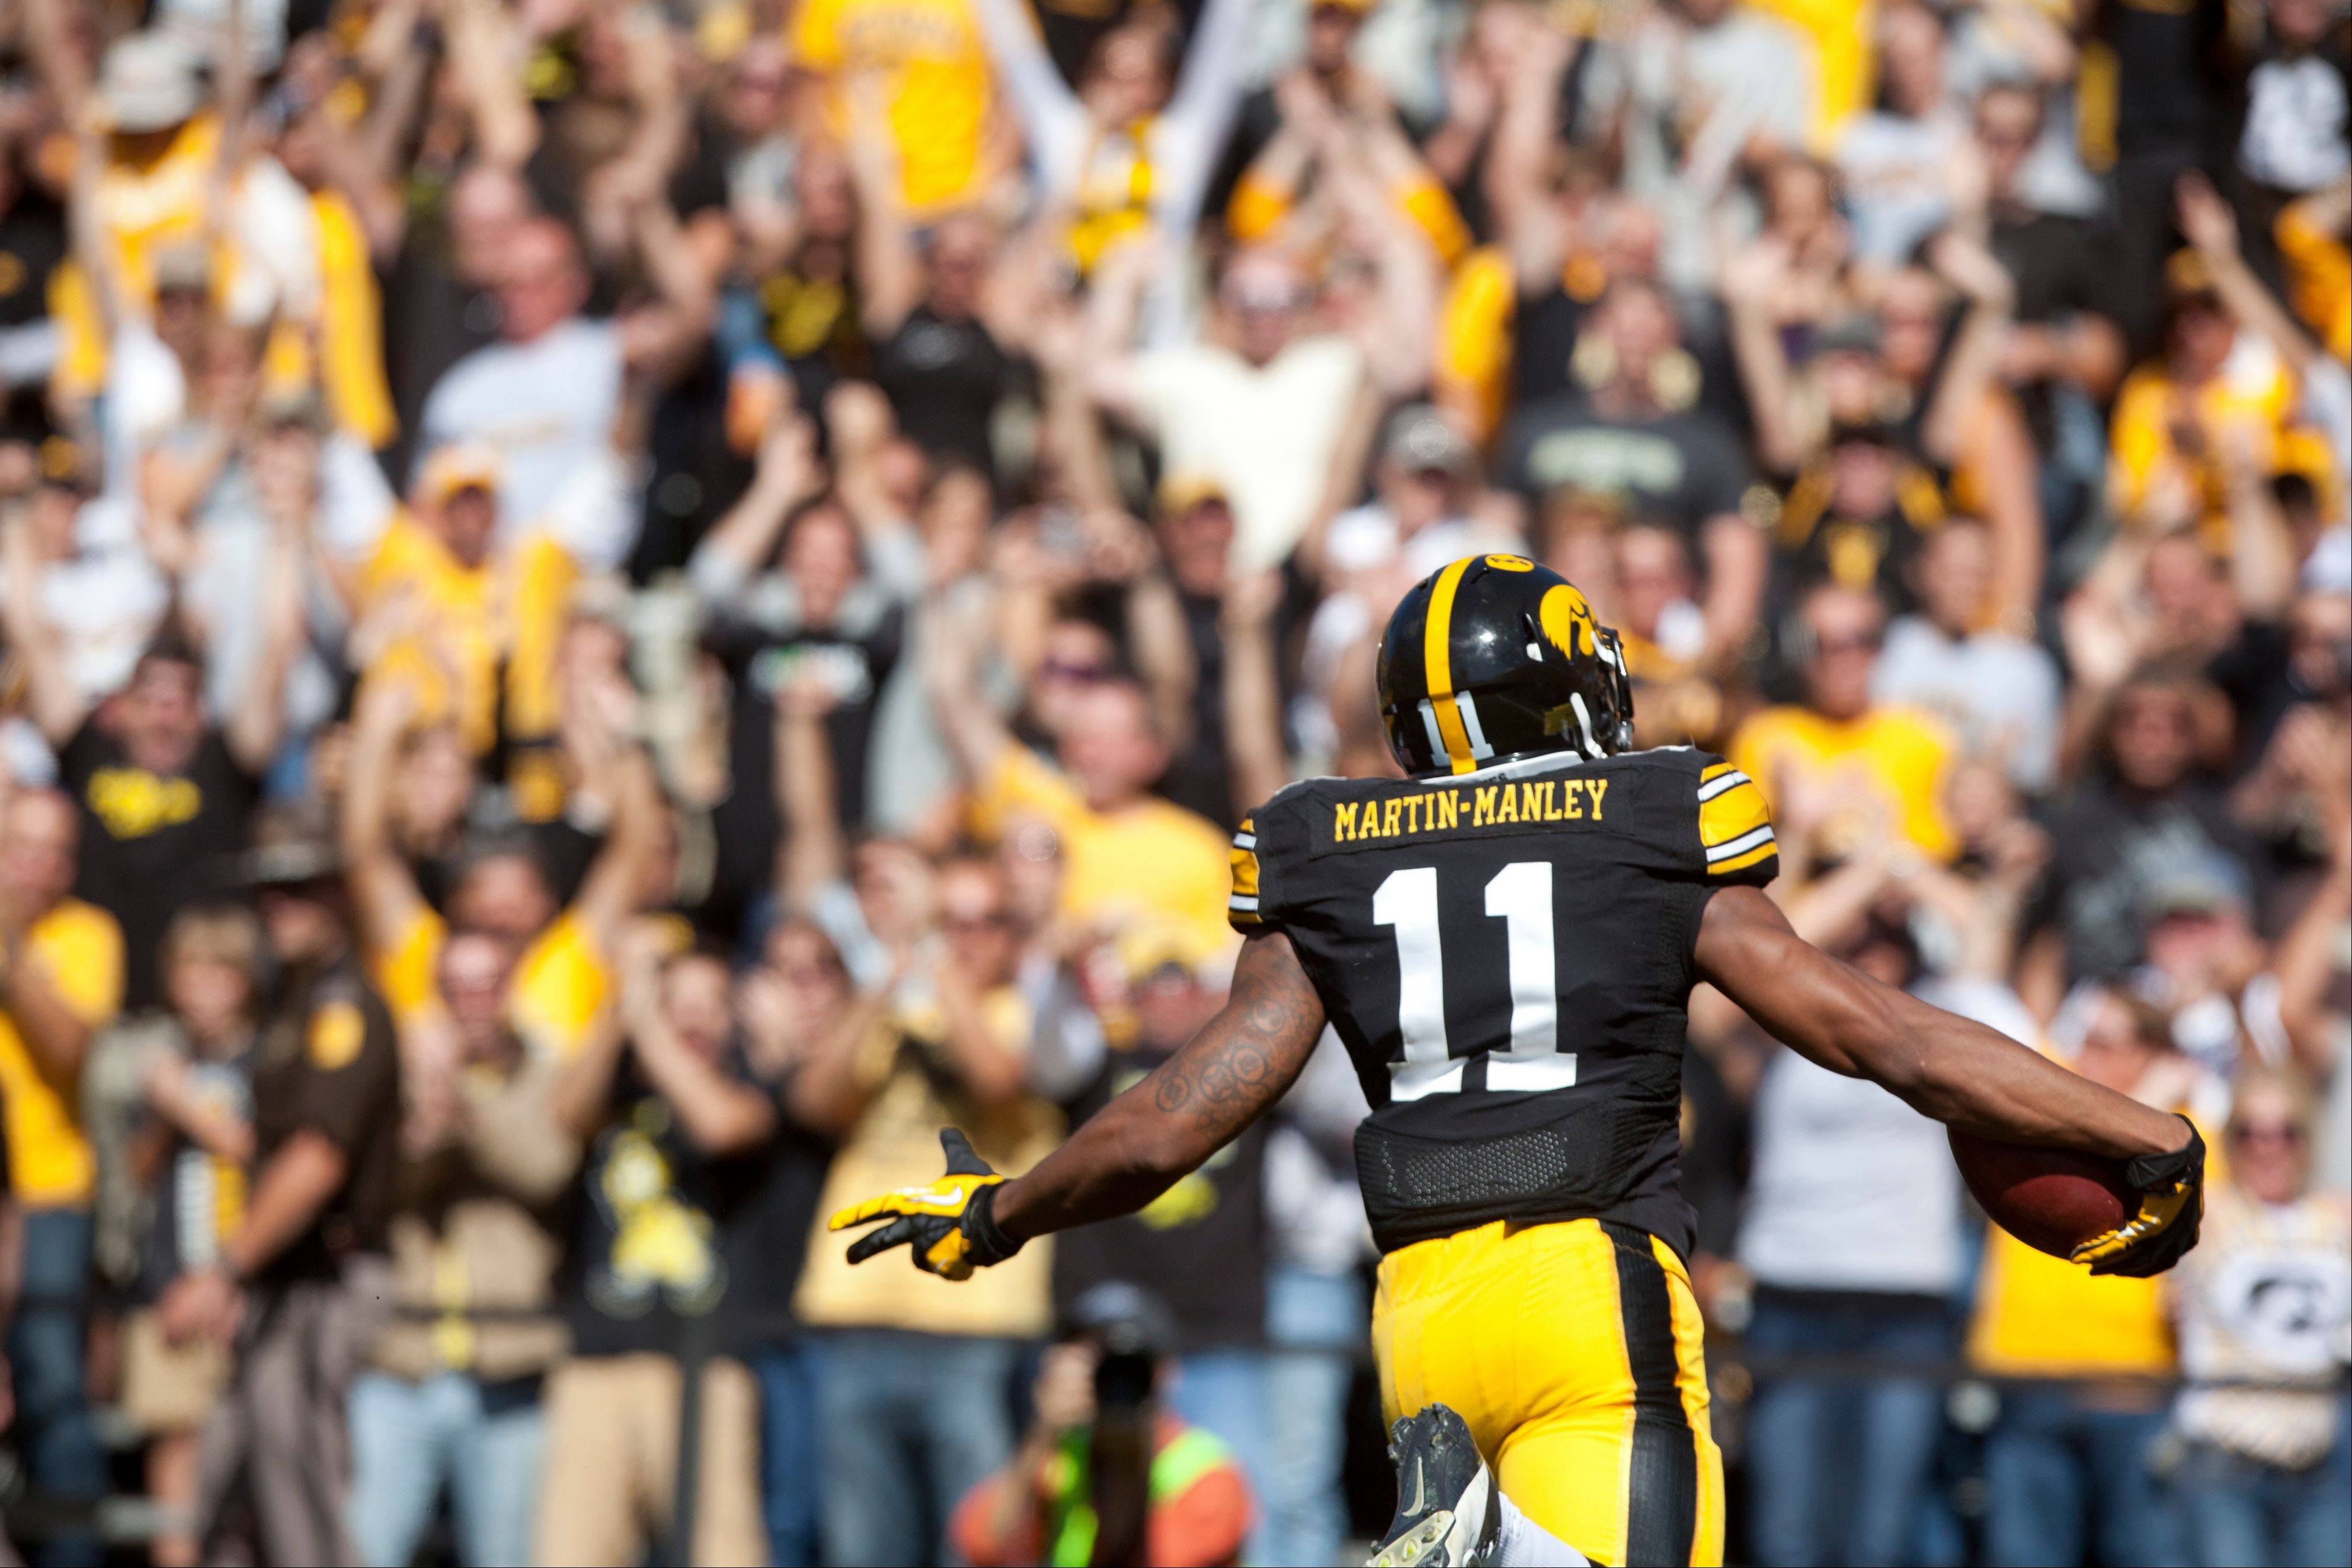 Iowa wide receiver Kevonte Martin-Manley scores on a punt return against Western Michigan during last Saturday�s game in Iowa City.